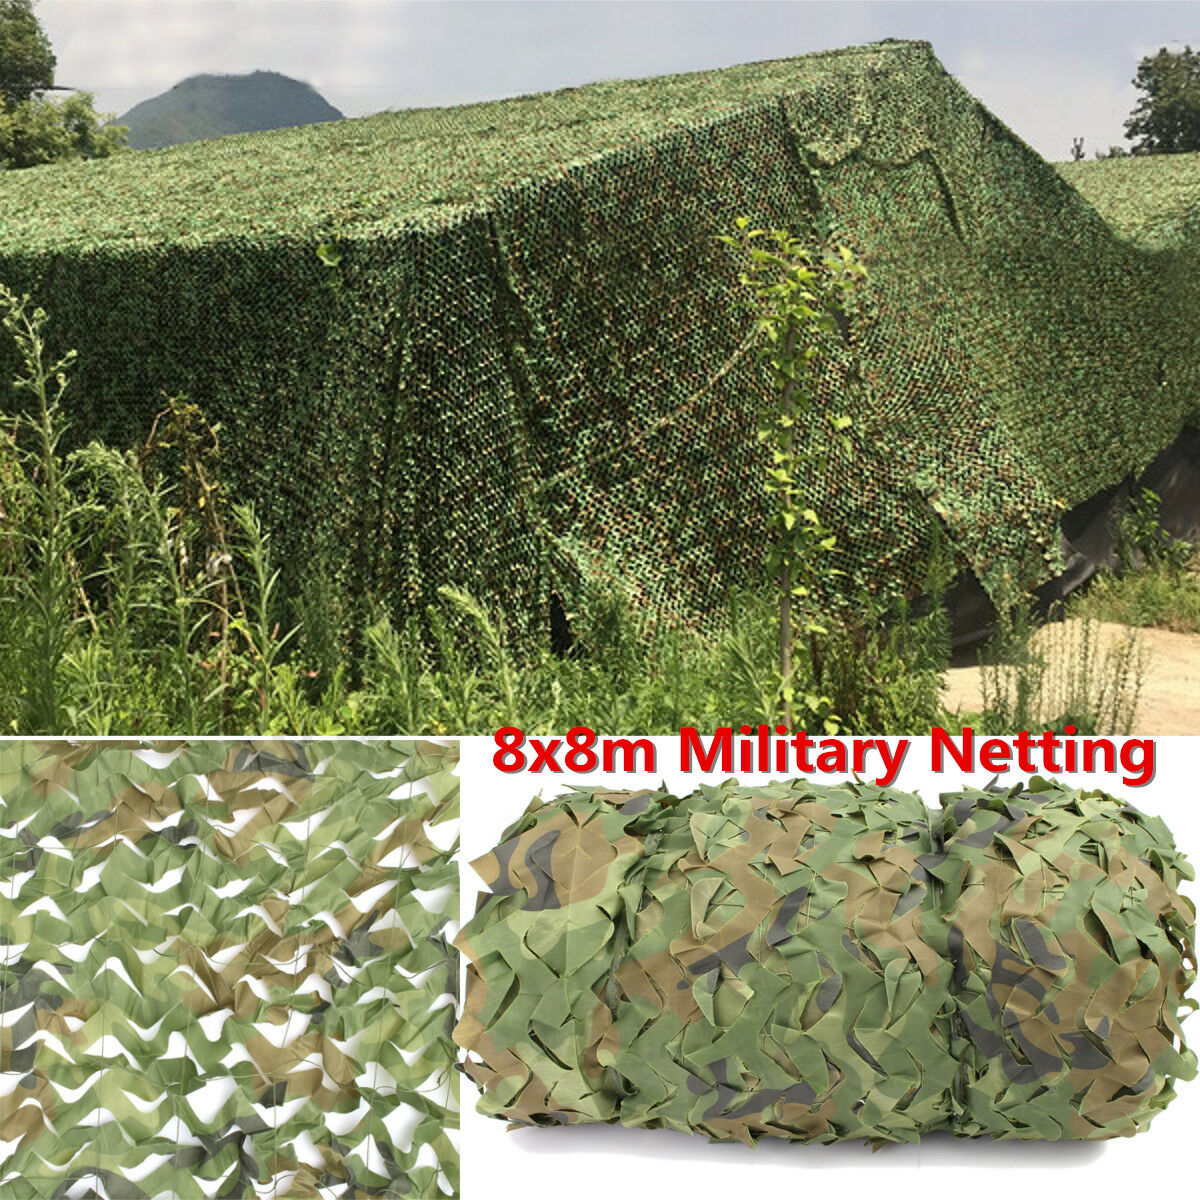 8MX8M Woodland  Camouflage Netting Military Army Camo Hunting Hide Camp Cover Net  perfect